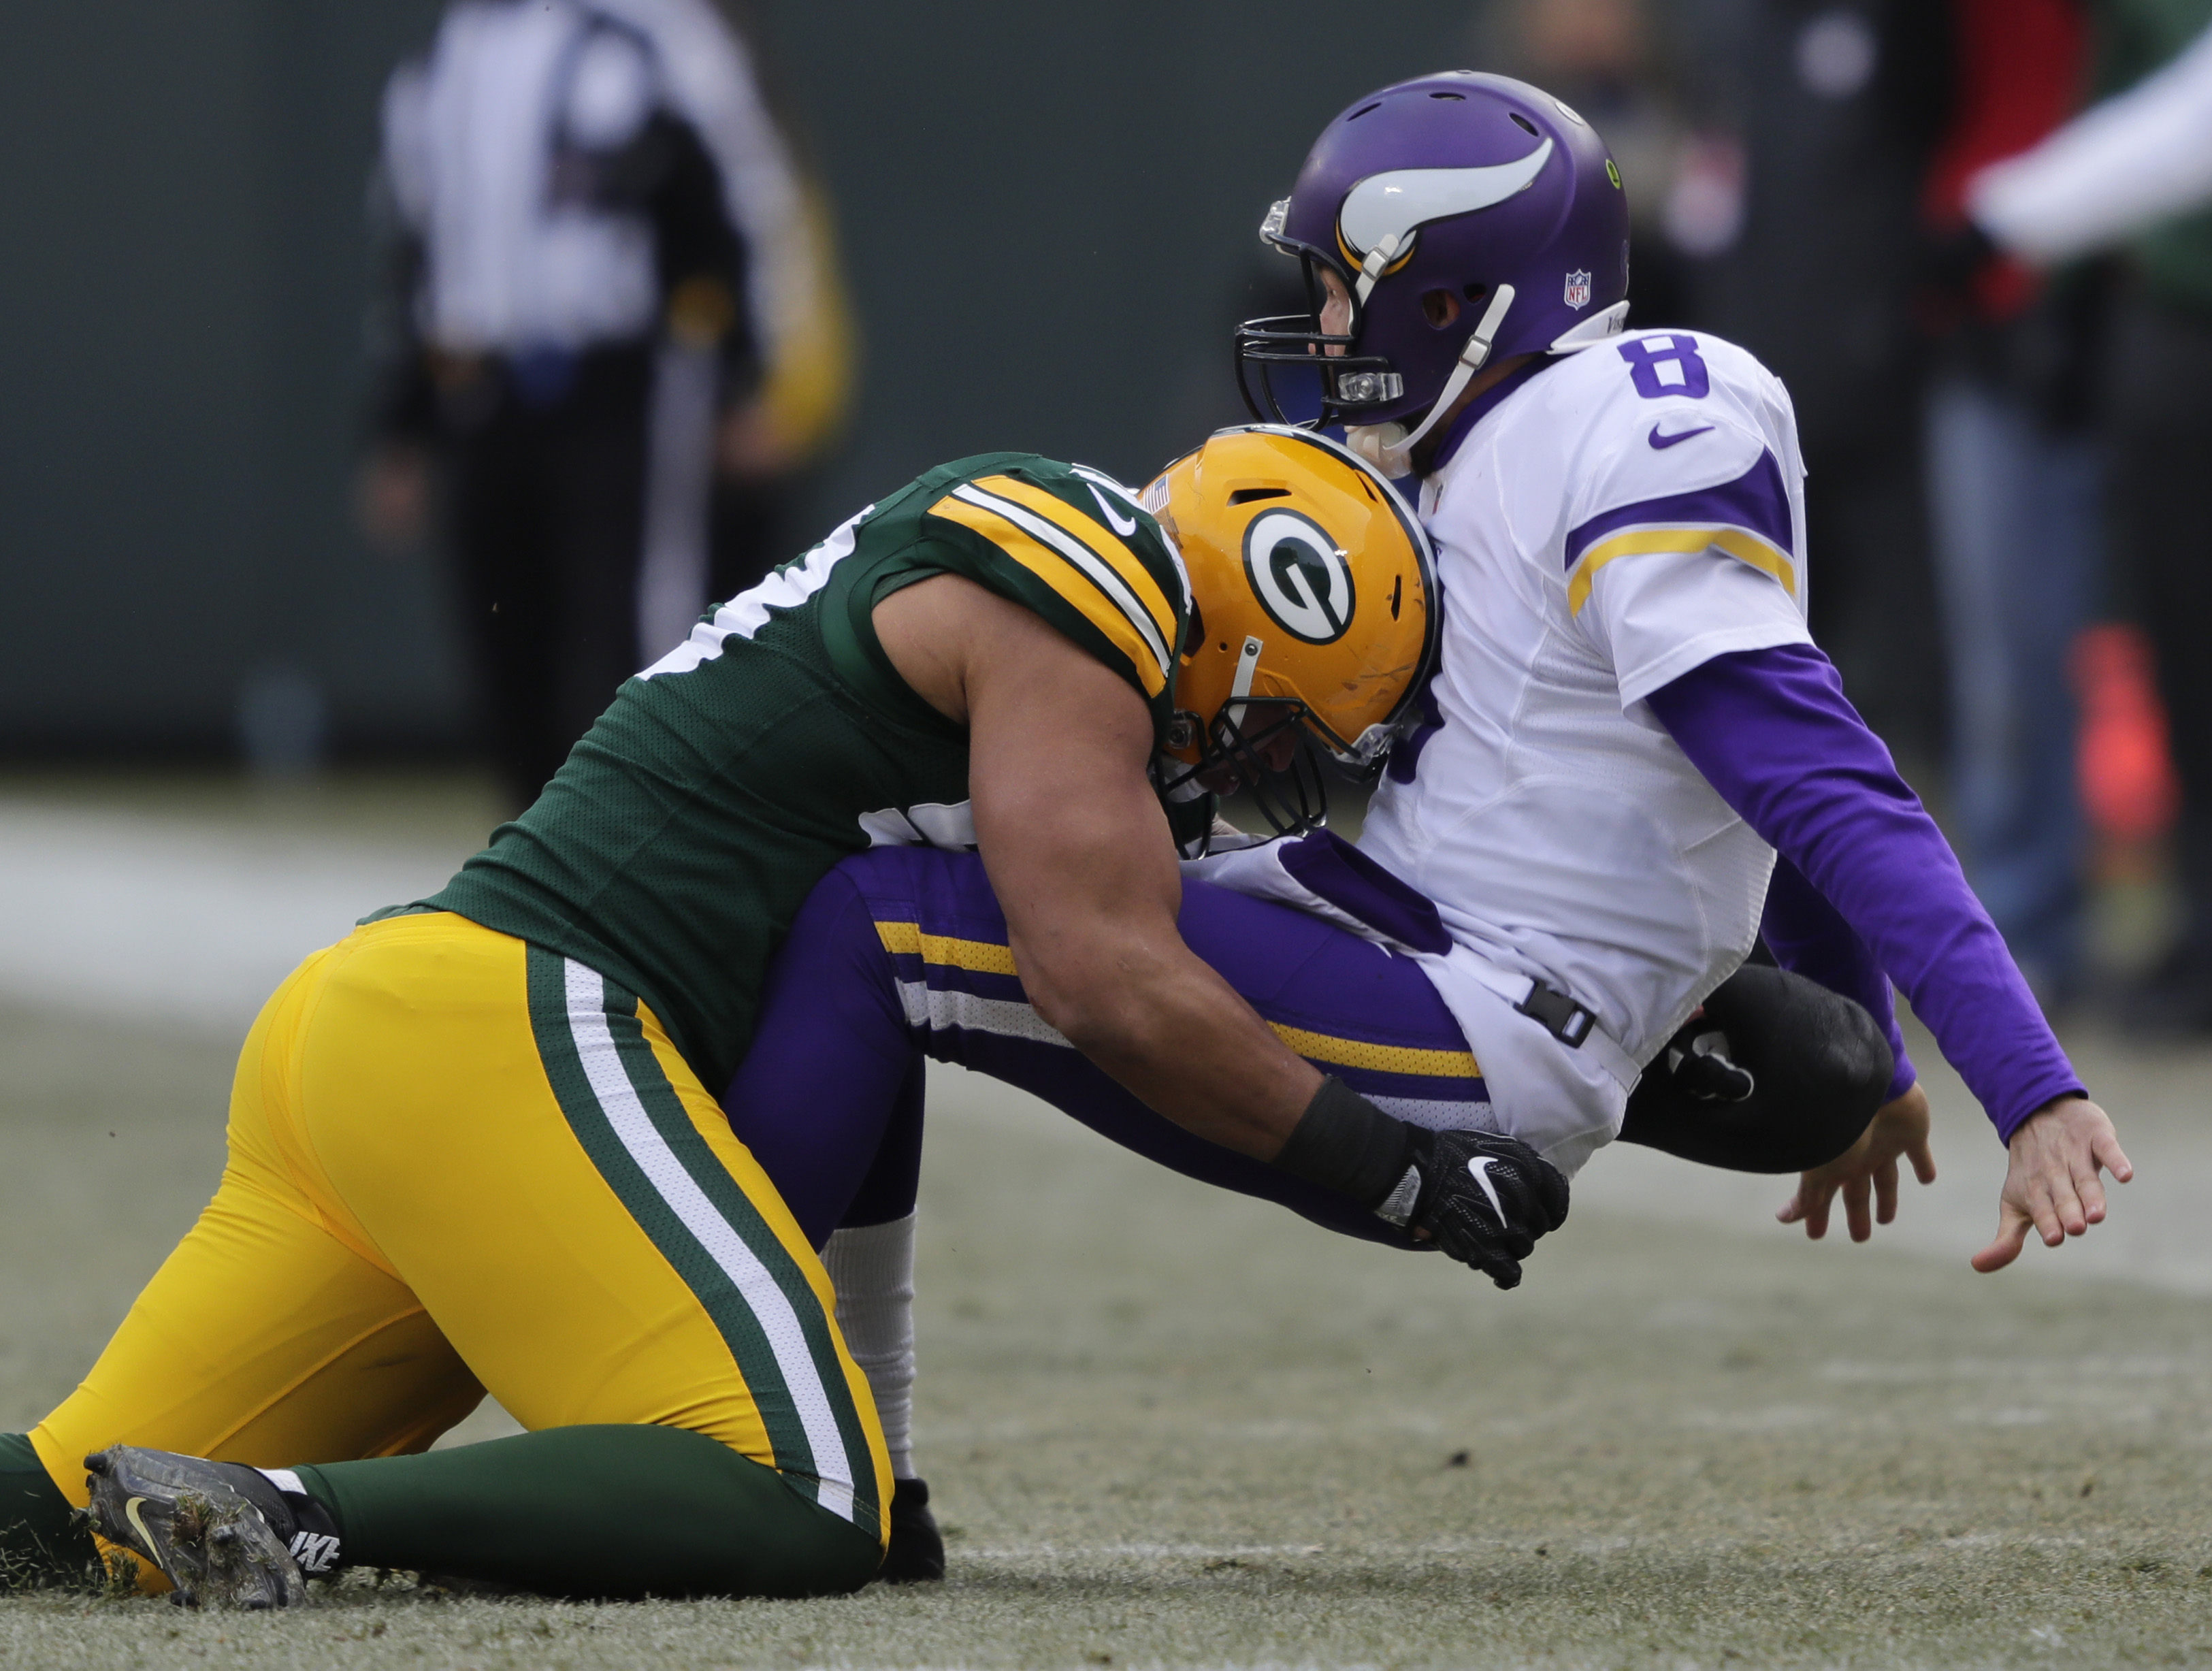 9767229-nfl-minnesota-vikings-at-green-bay-packers-1